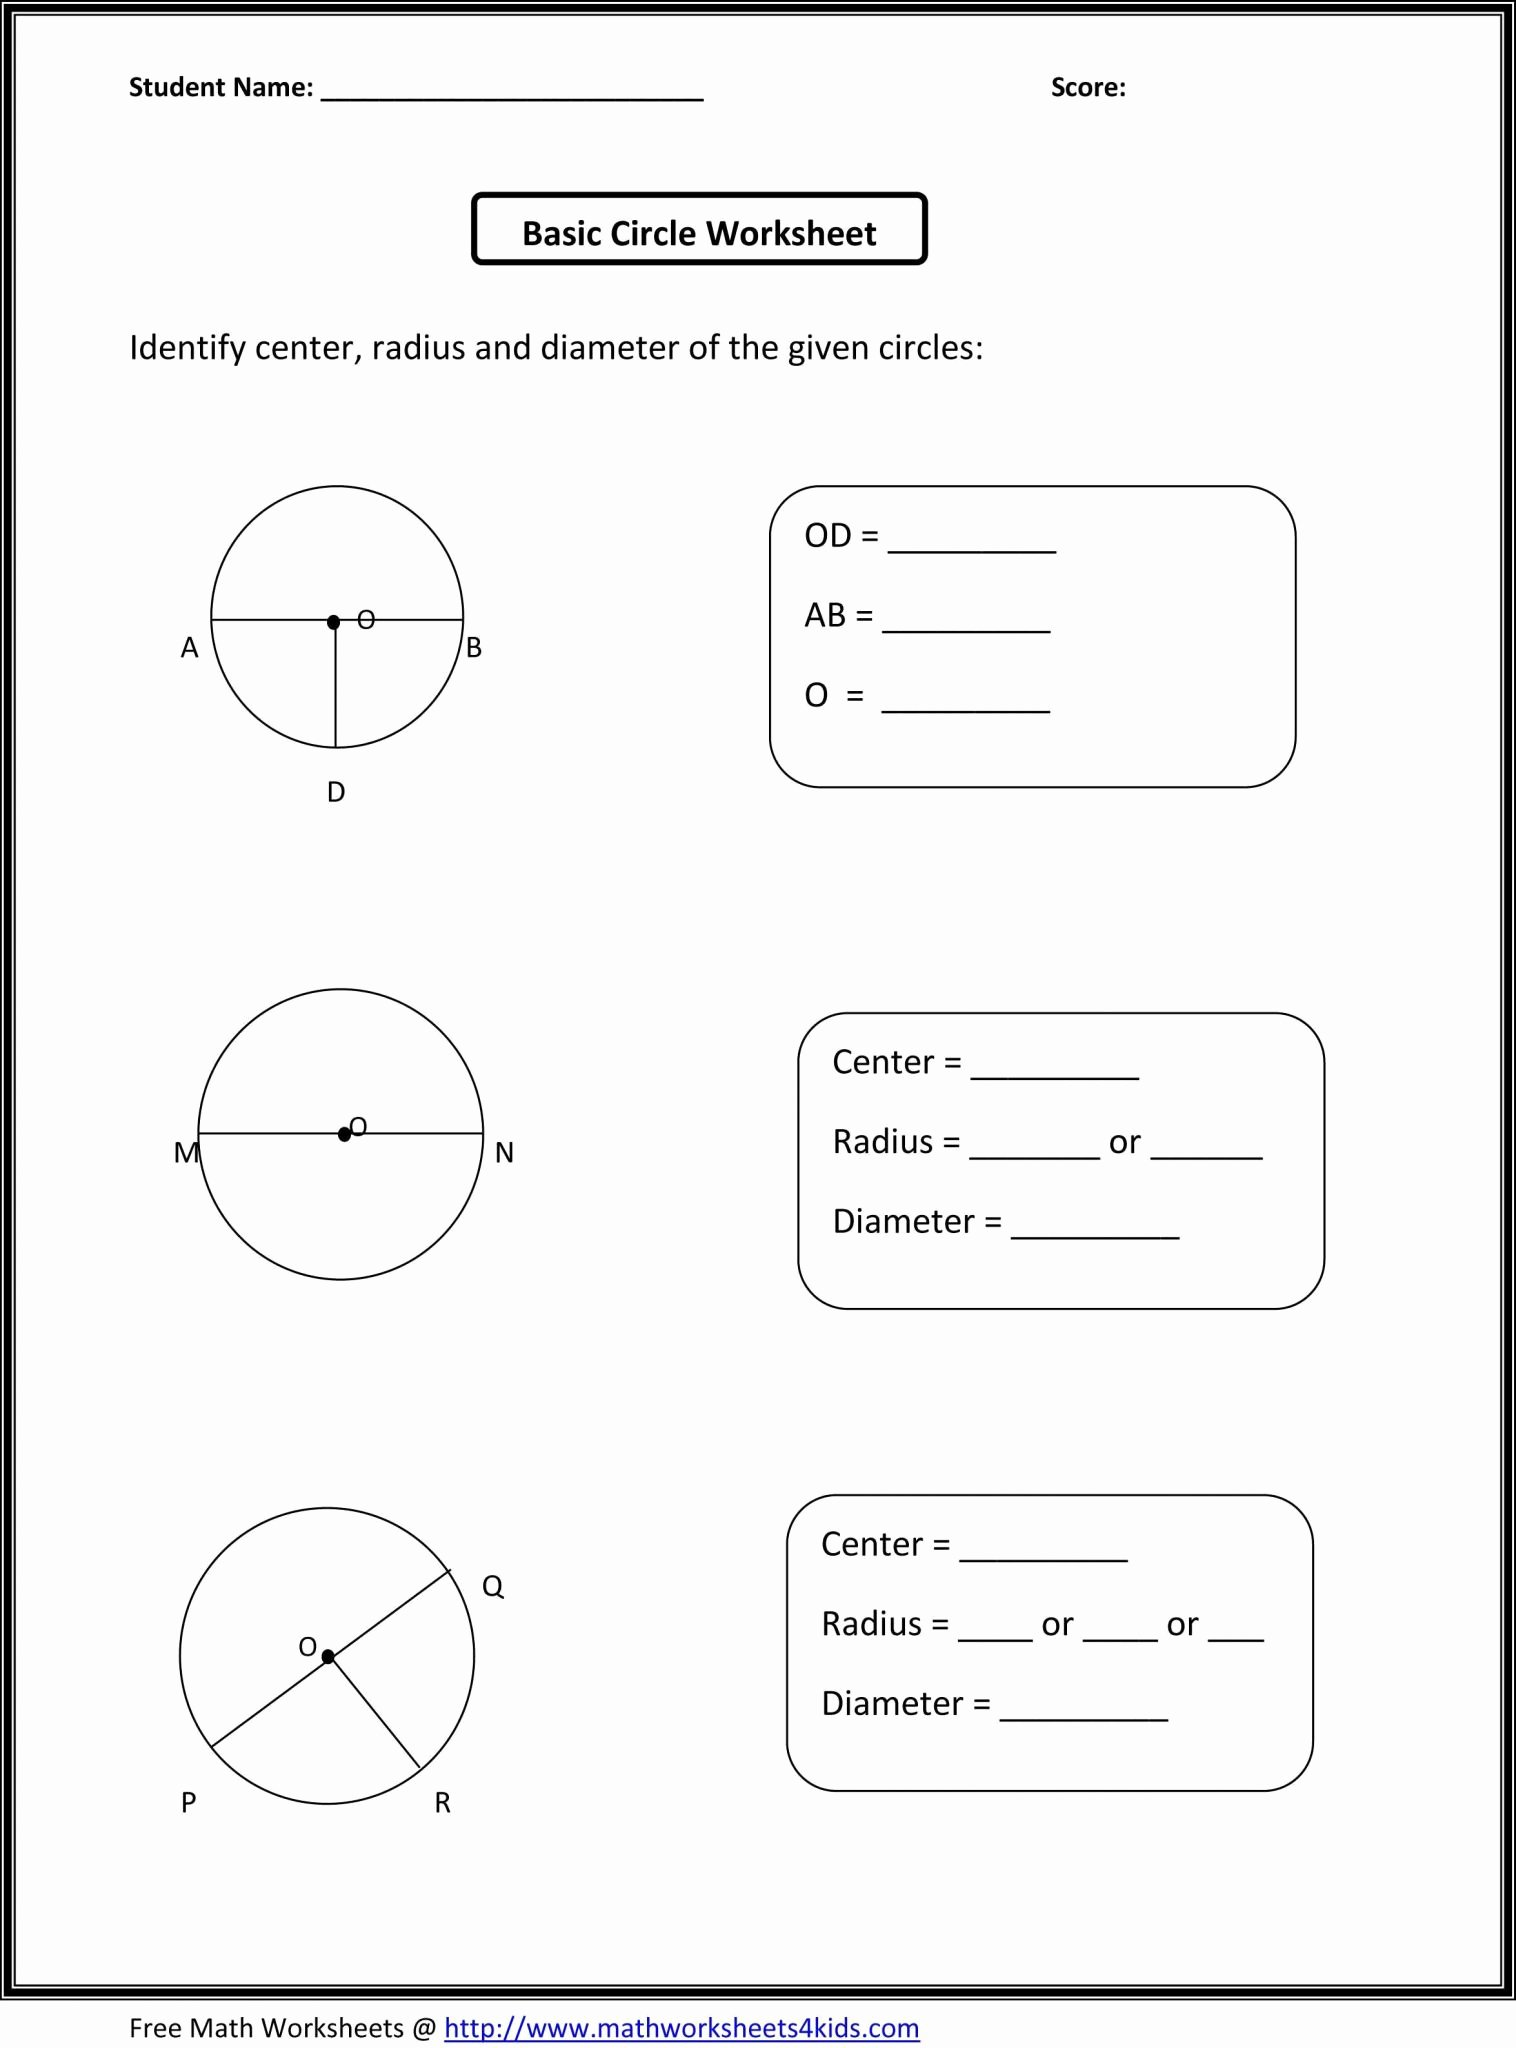 Systems Of Equations Review Worksheet Inspirational Worksheet Linear Equations Graphing